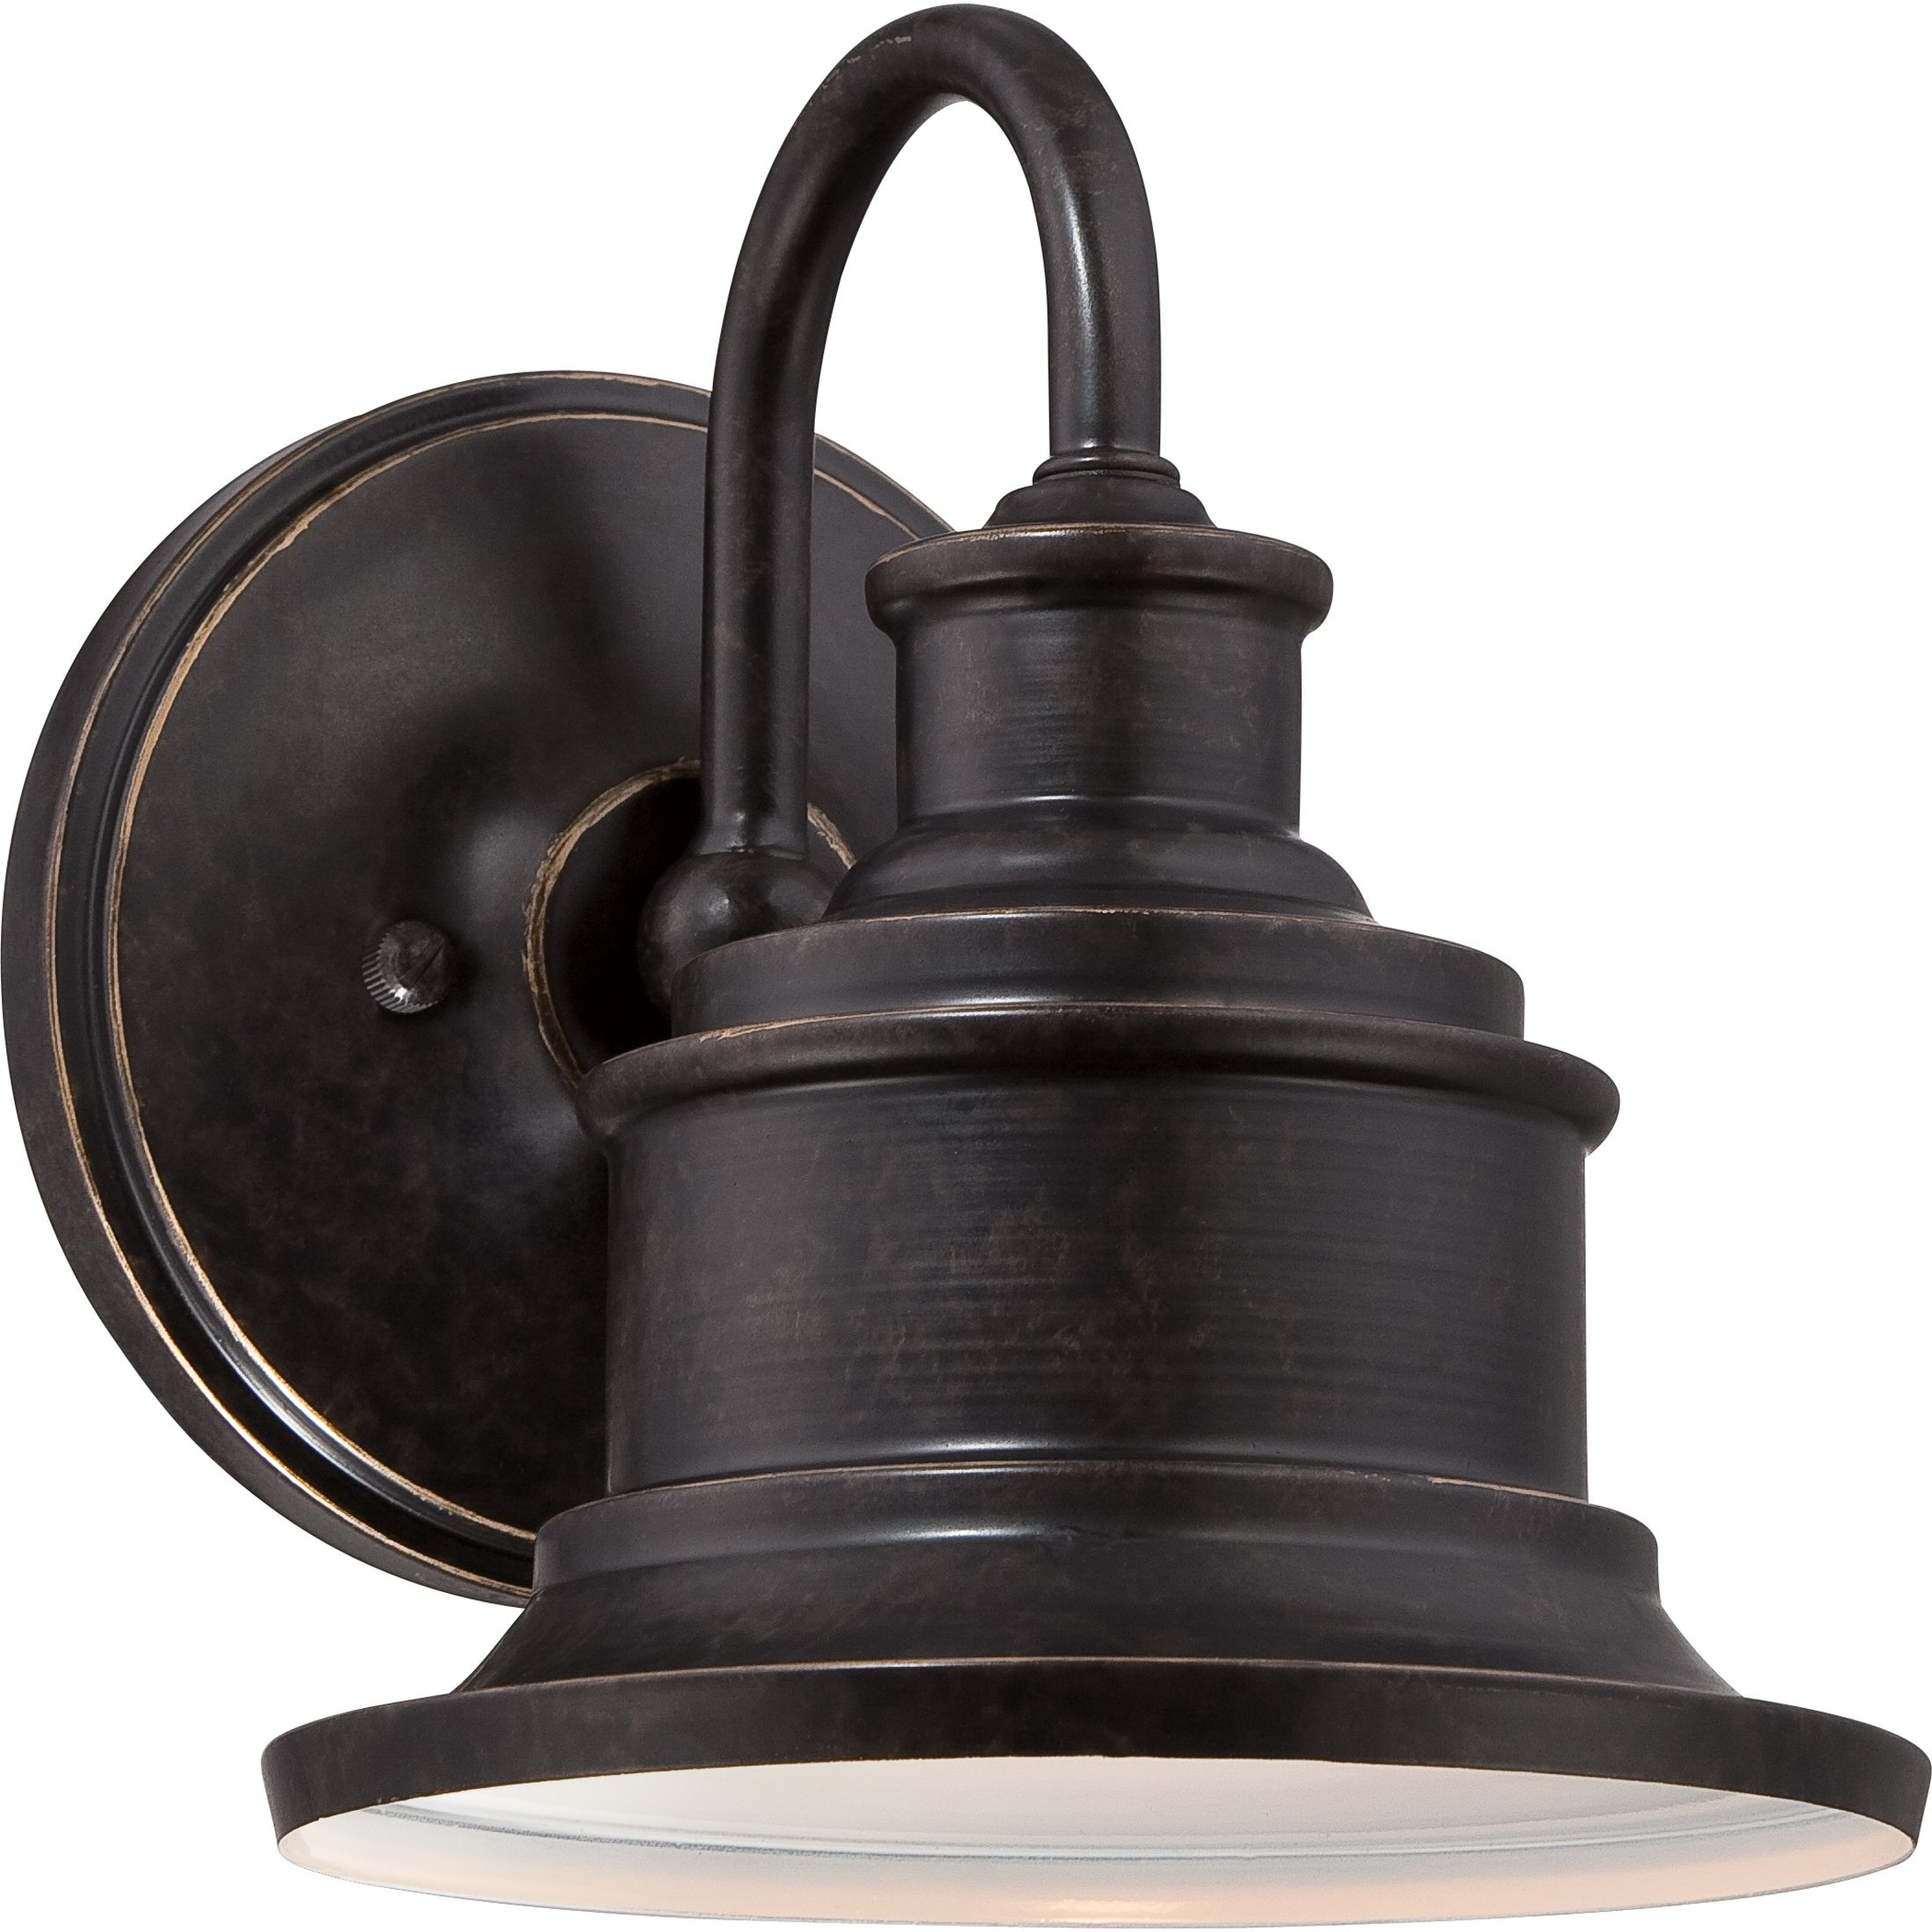 Quoizel SFD8407IB Seaford with Imperial Bronze Finish and  Small Wall Lantern,  Brown